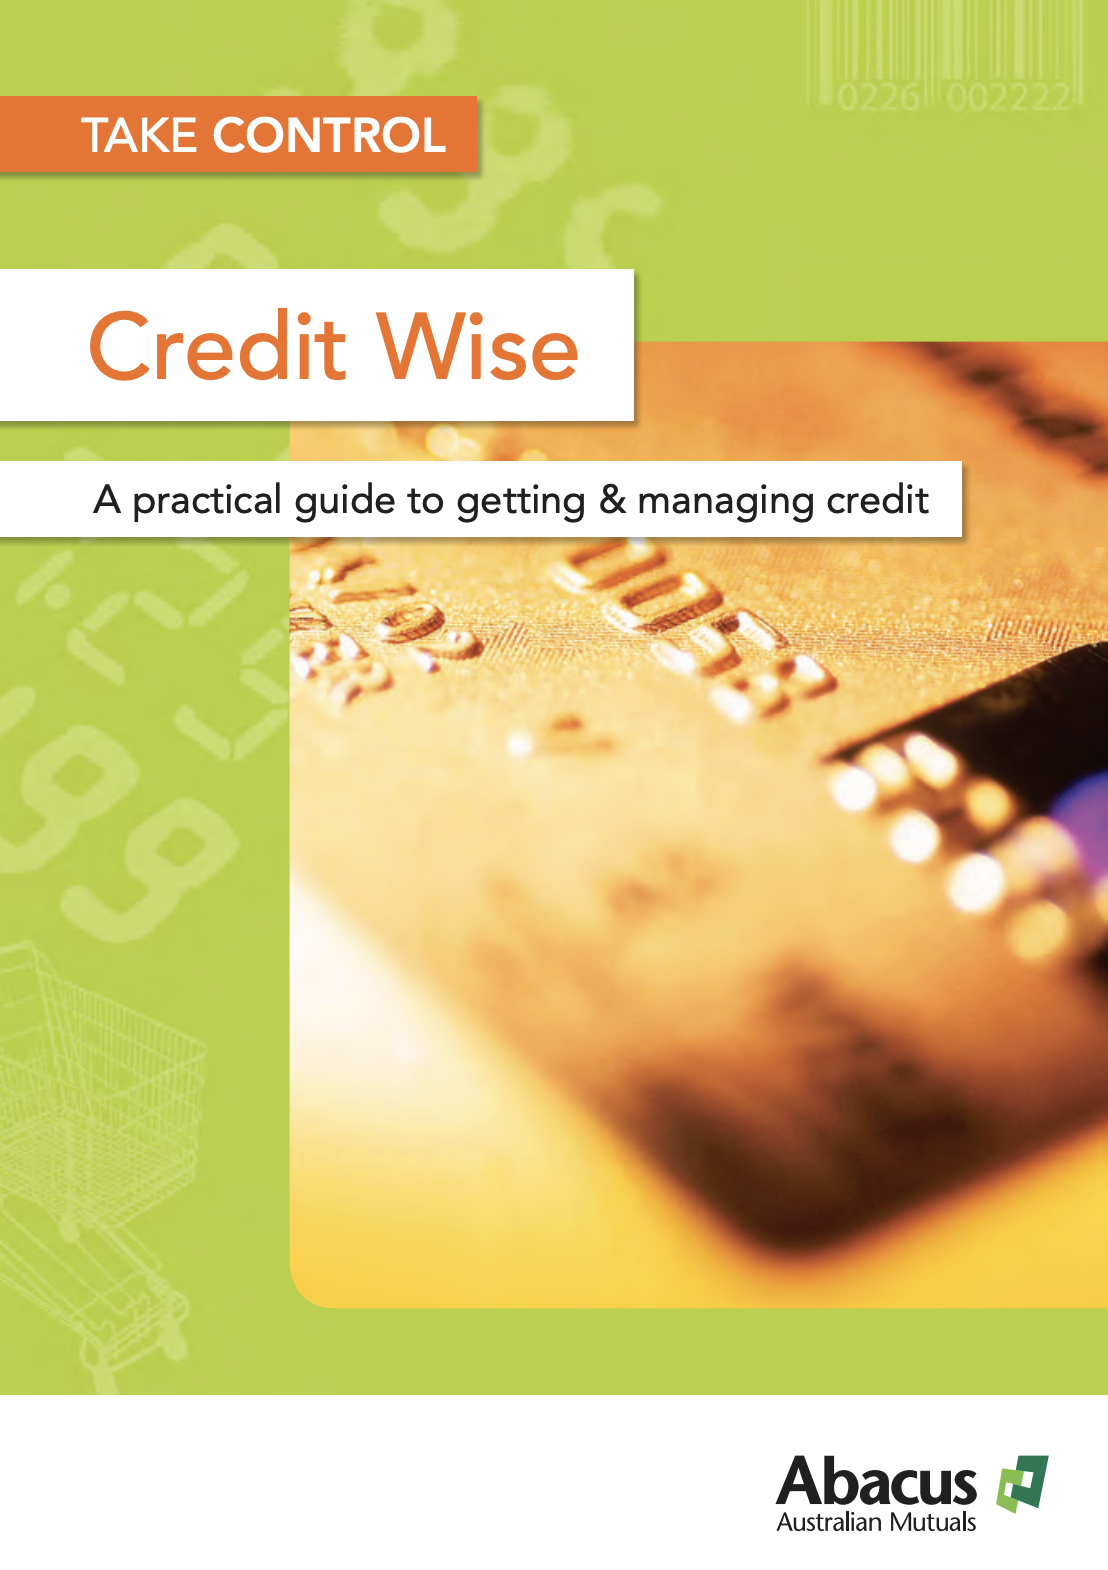 Credit Wise